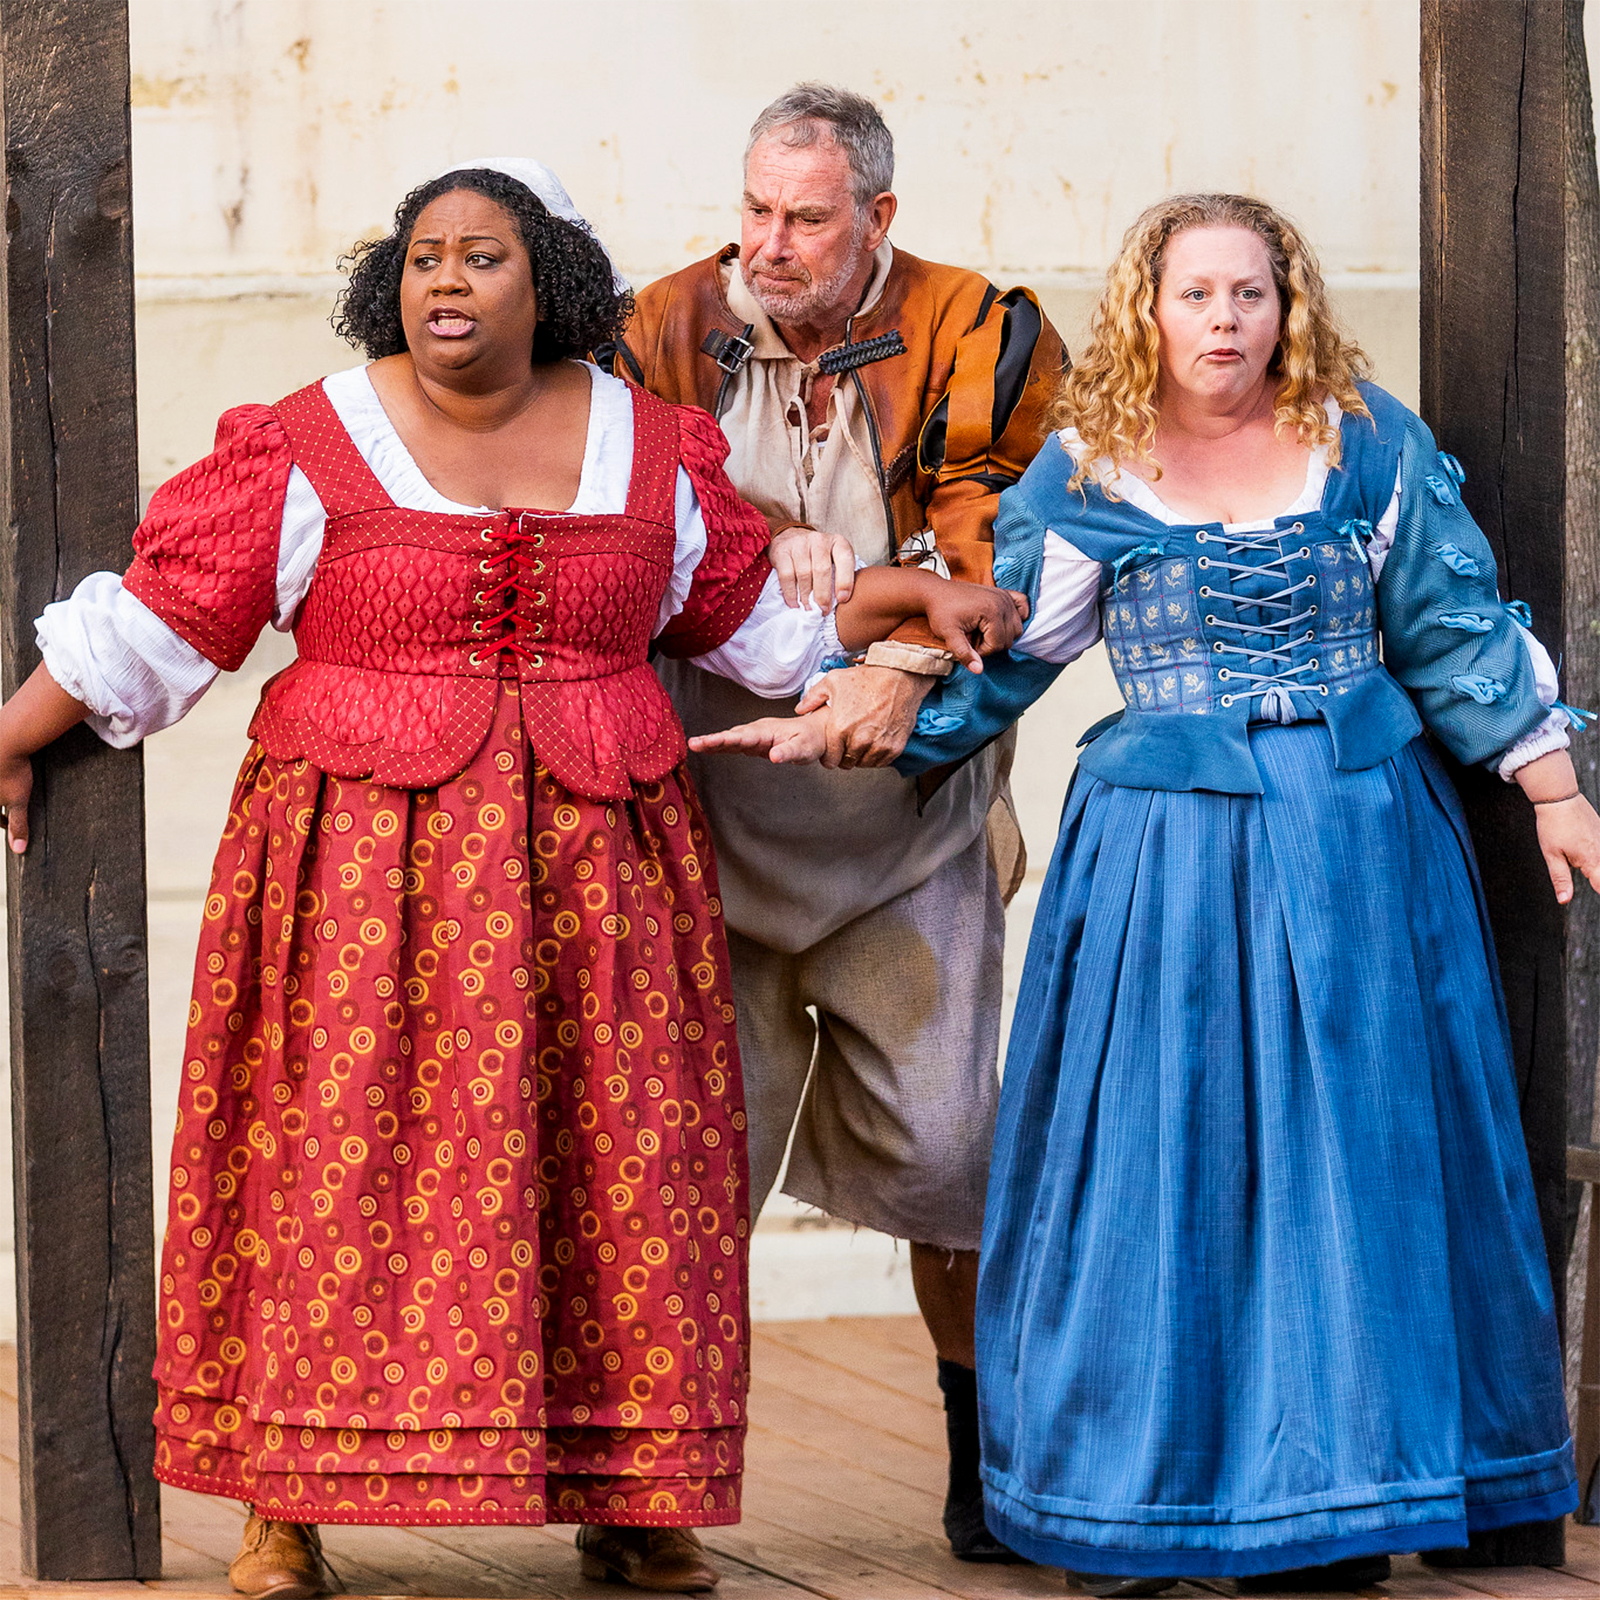 MaConnia Chesser, Nigel Gore, and Jennie M. Jadow as Meg Page, Sir John Falstaff, and Alice Ford (respectively) in The Merry Wives of Windsor; photo by Nile Scott Studios.